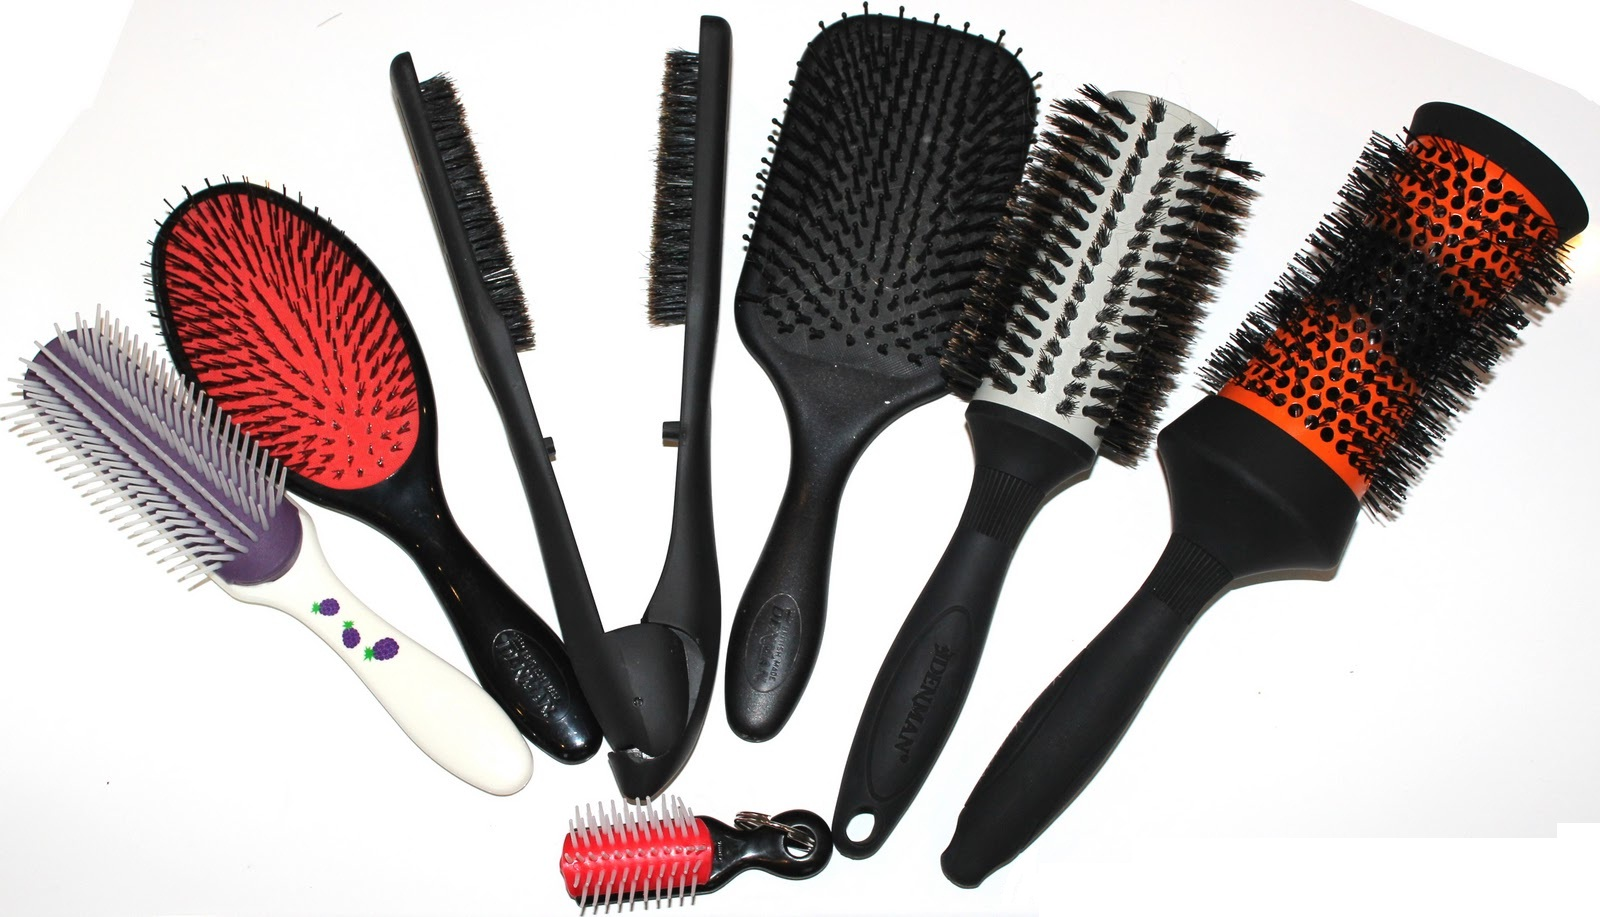 Hair Styling Equipment: Best Hair Care Styling Tools